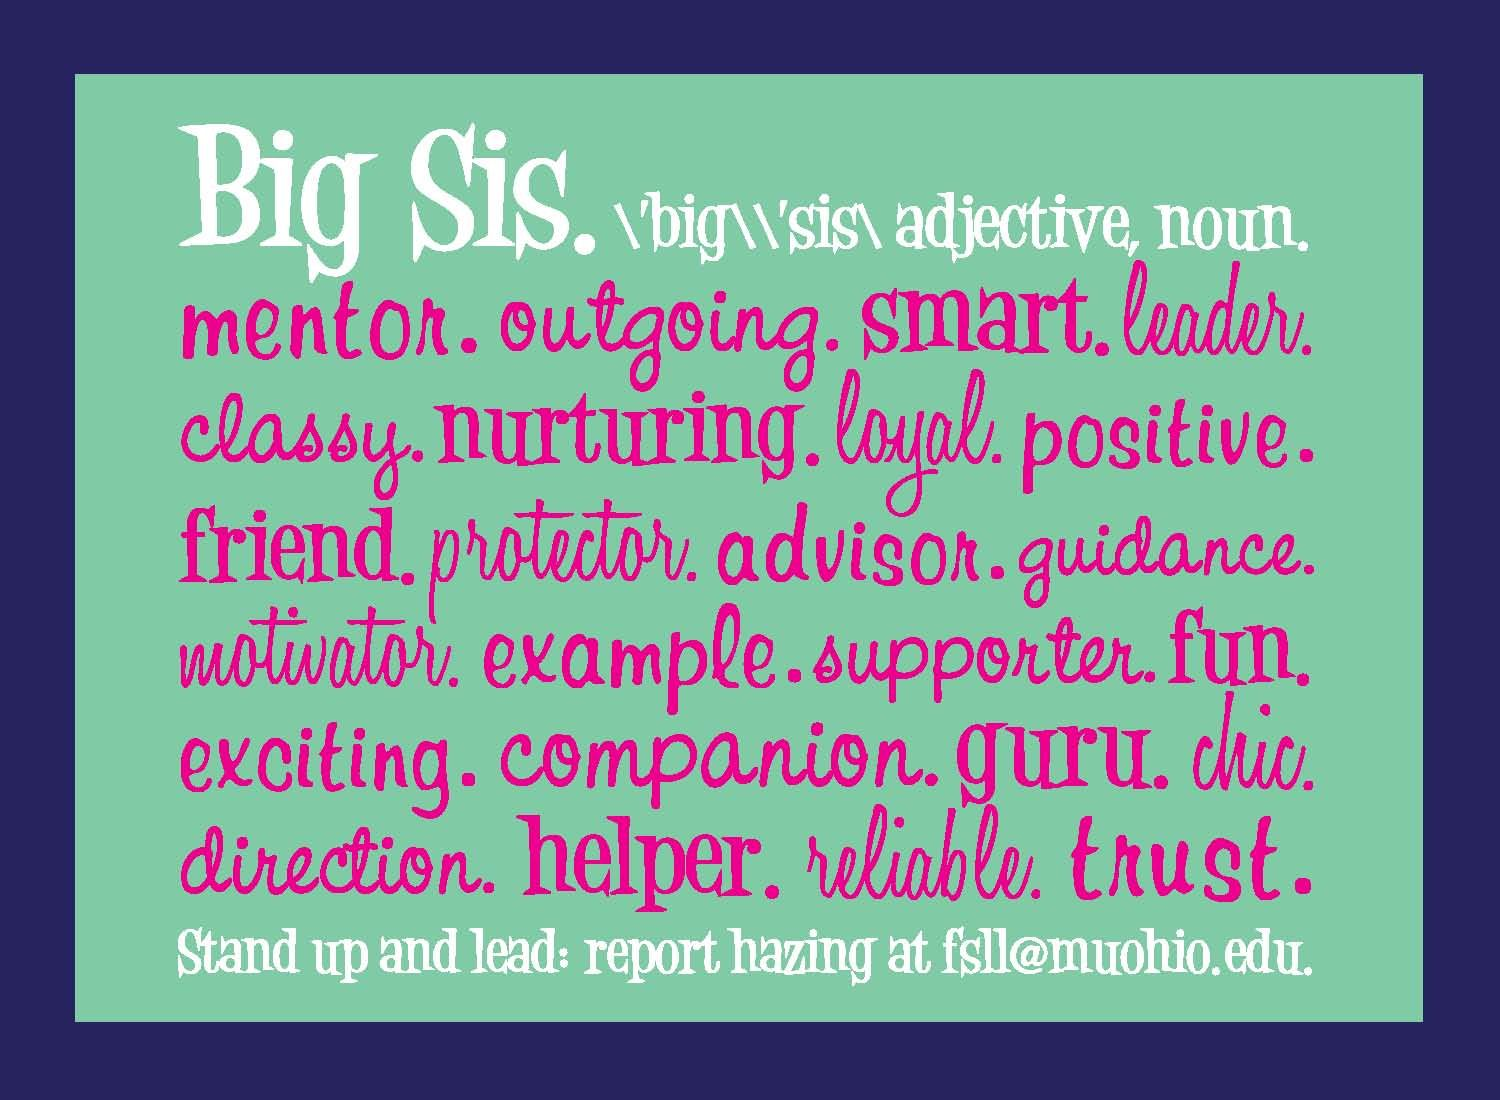 Love My Big Sister Quotes This Is The Kind Of Big I Strive To Be For My Little Biglittle